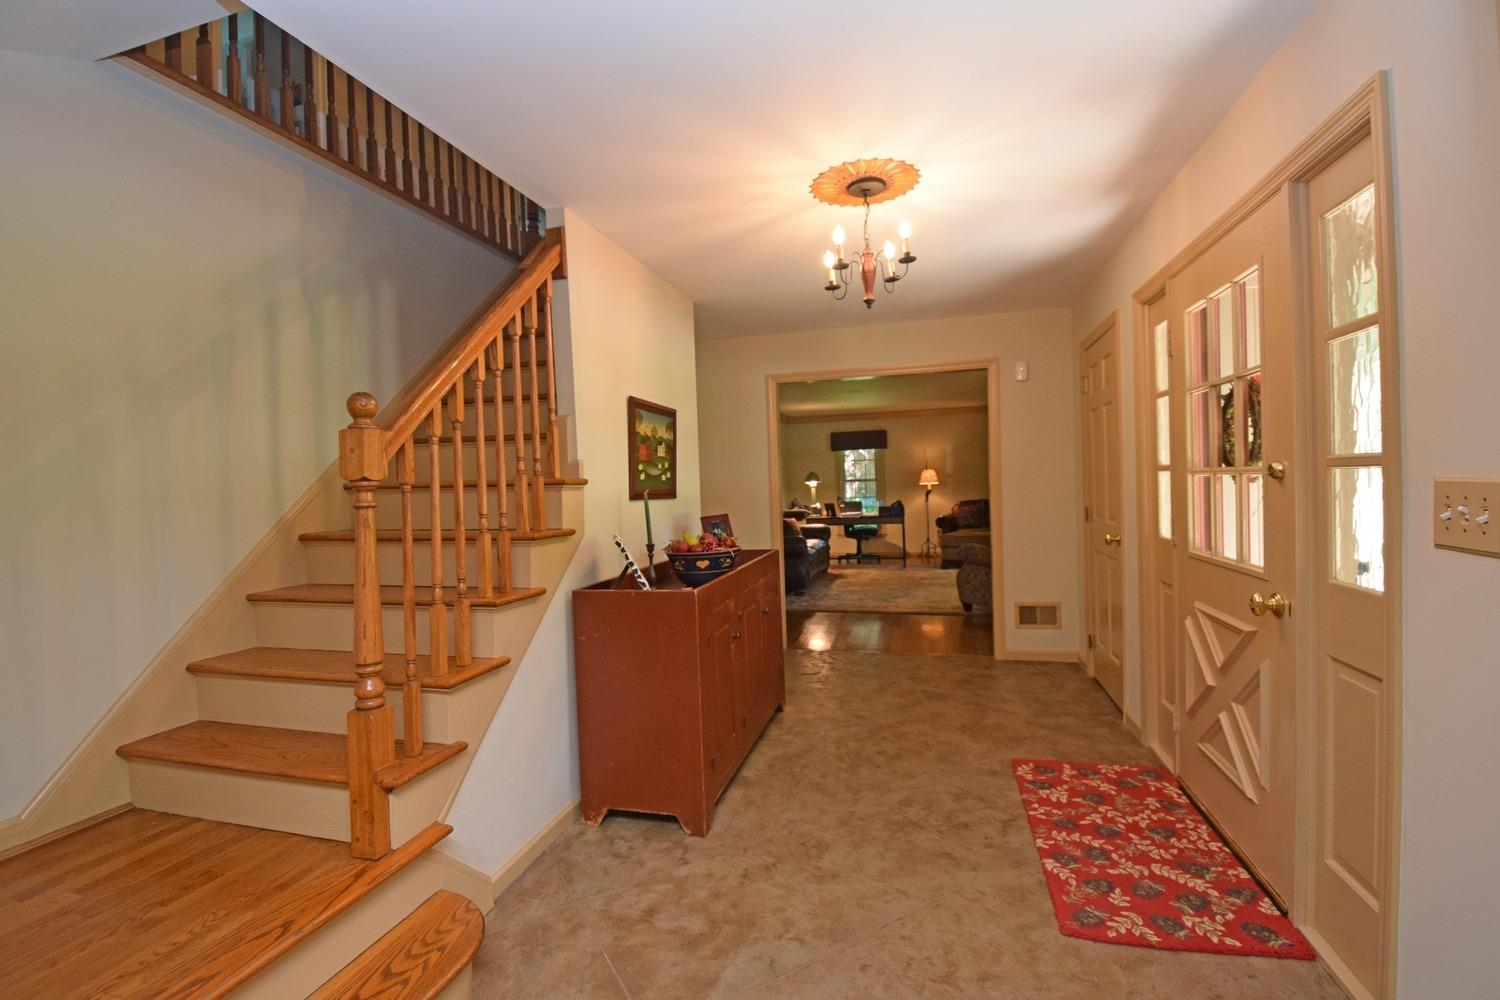 Photo 2 for 6852 Wetheridge Dr Anderson Twp., OH 45230